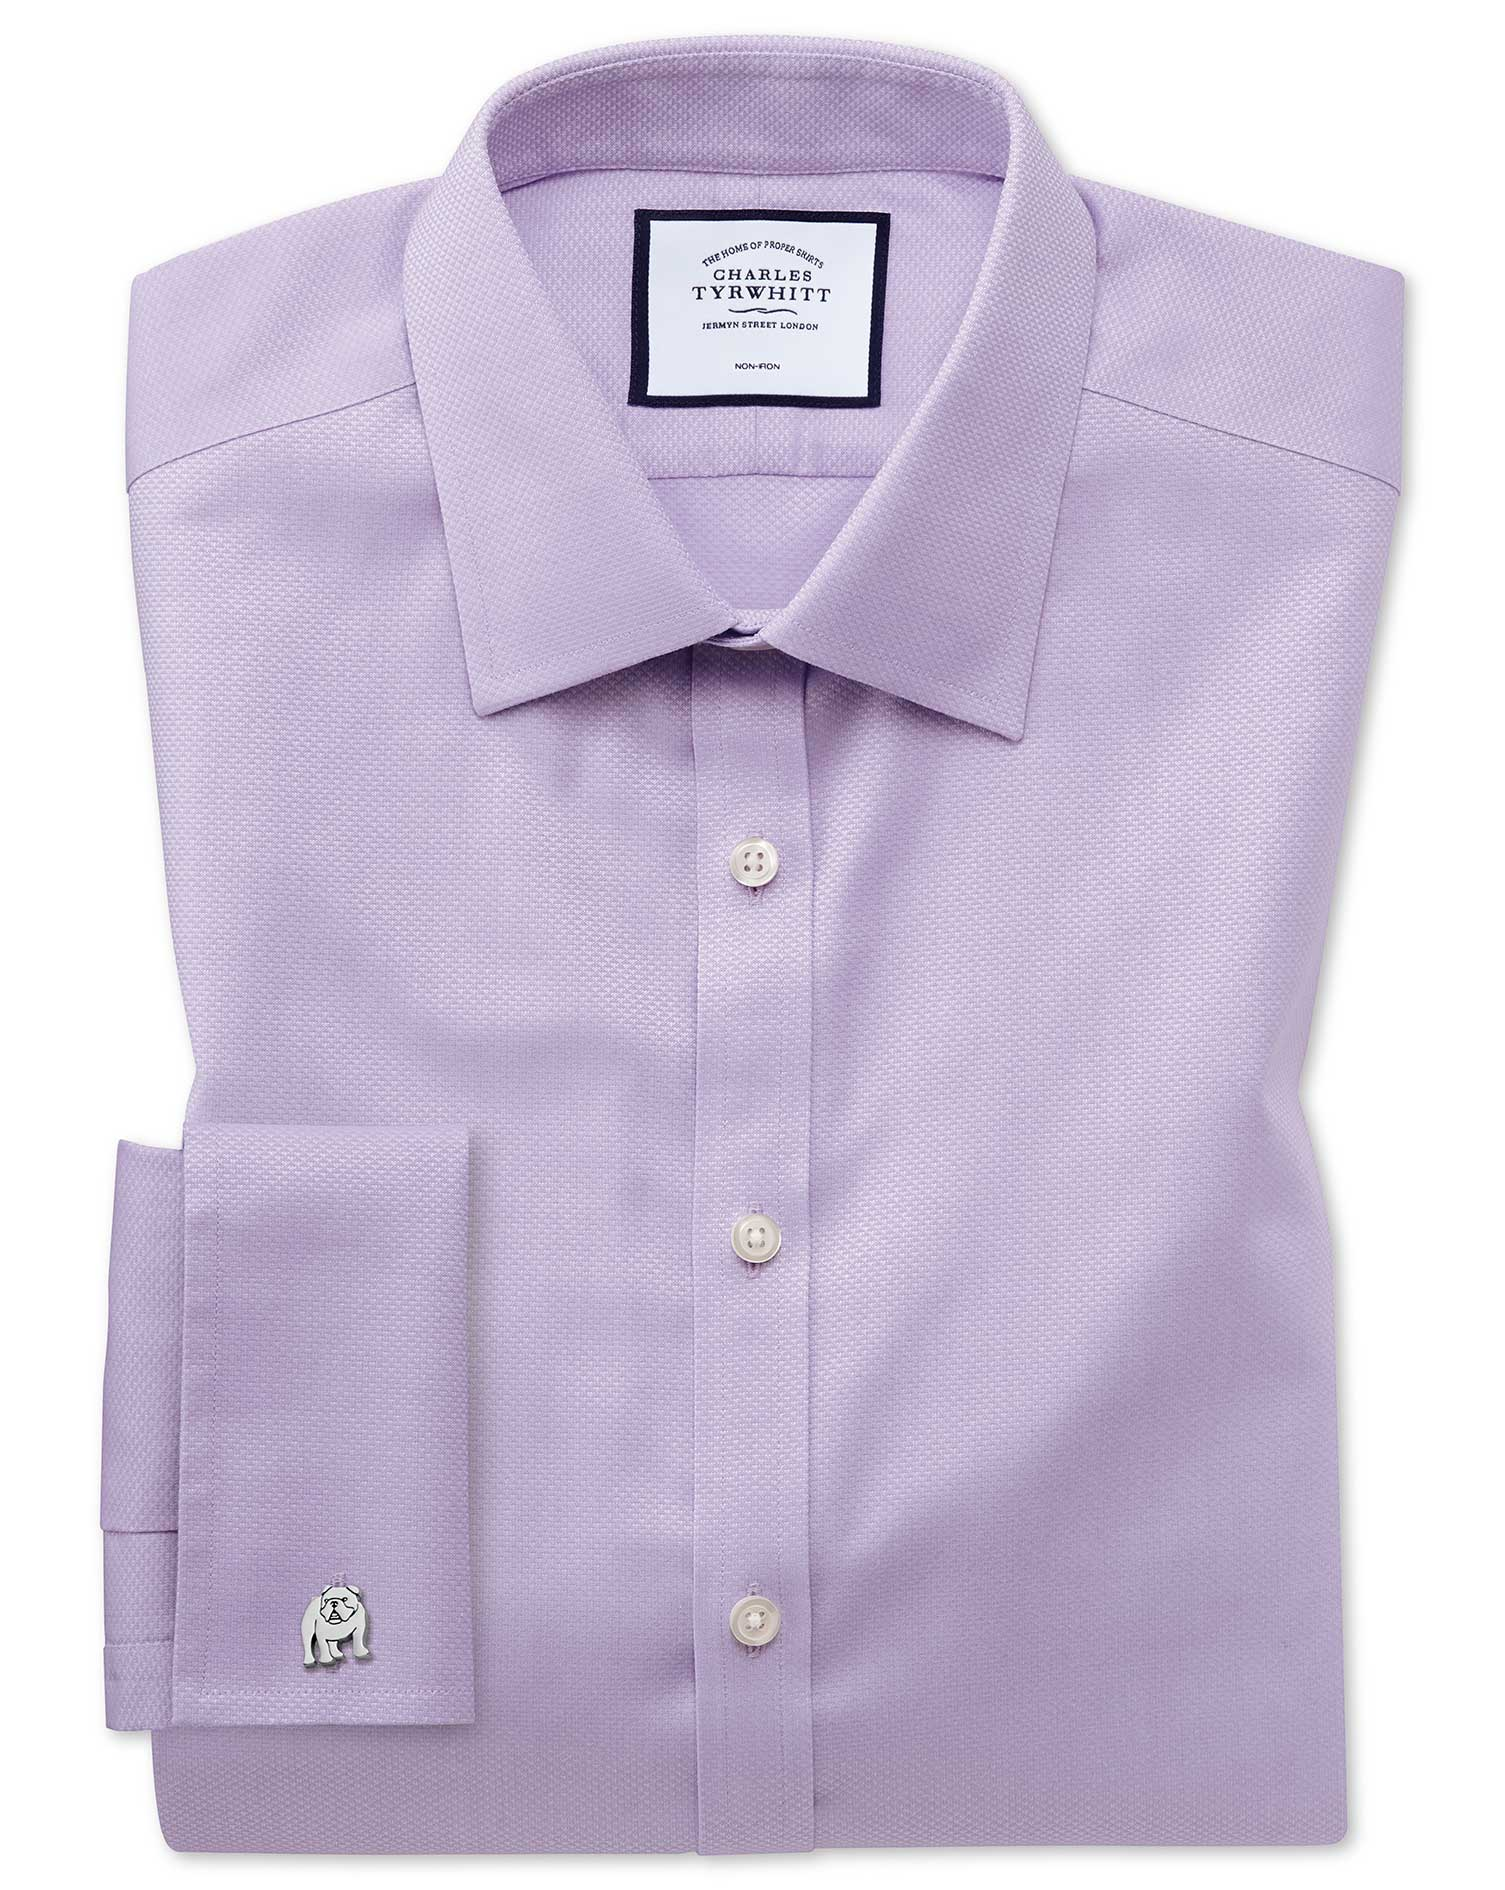 Super Slim Fit Non-Iron Lilac Triangle Weave Cotton Formal Shirt Single Cuff Size 15.5/34 by Charles